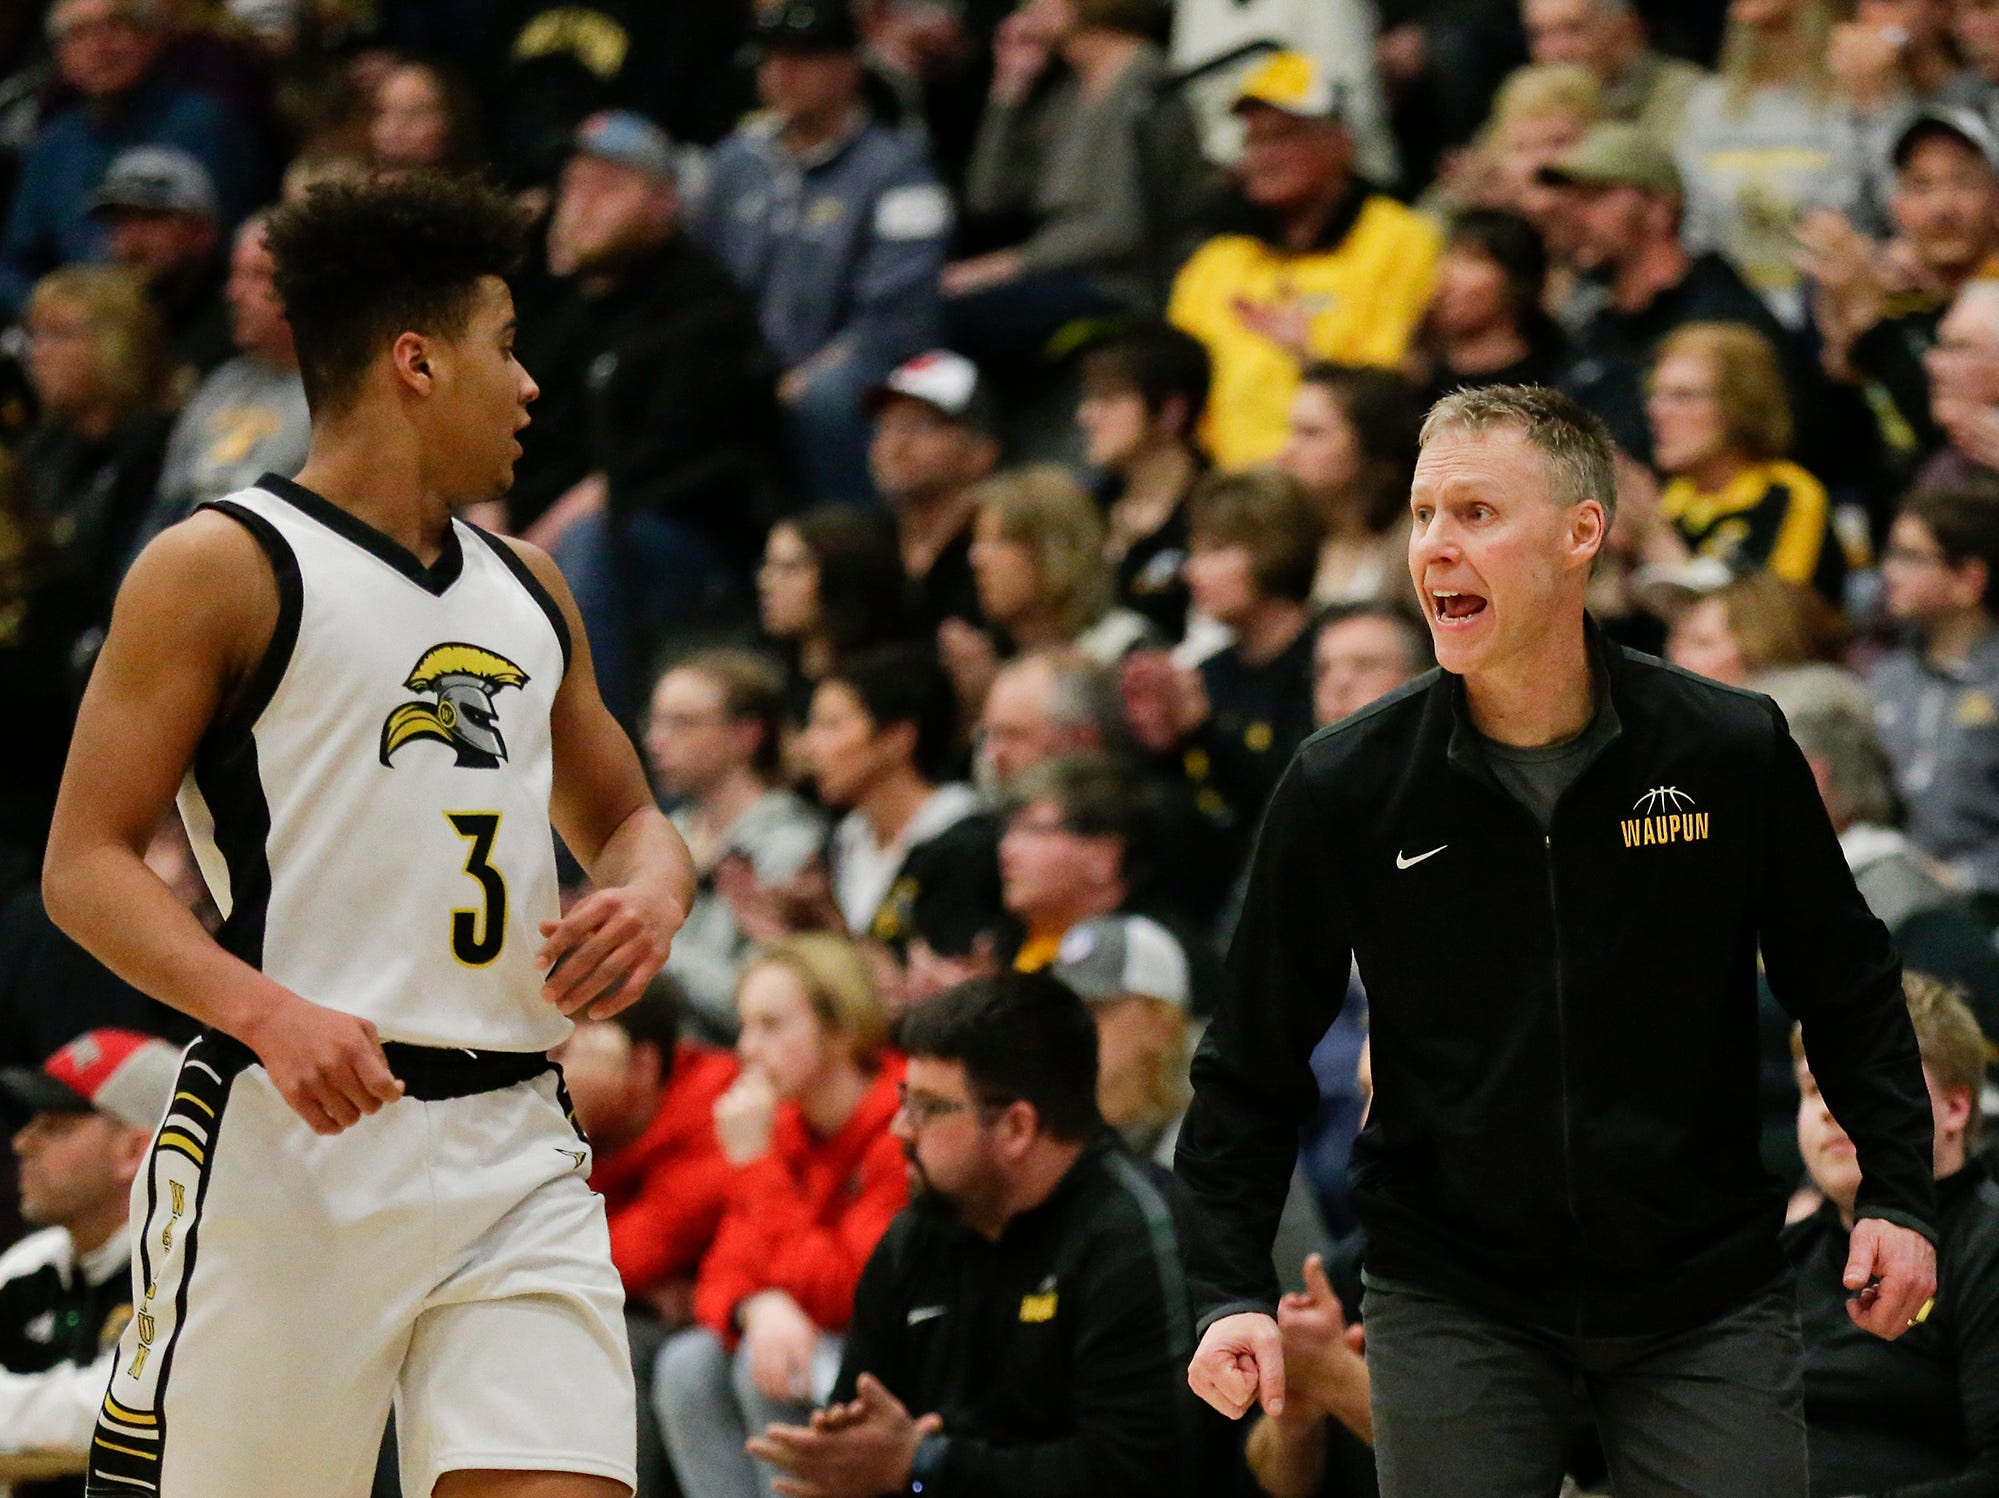 Waupun High School boys basketball's Quintin Winterfeldt gets instructions from Head Coach Dan Domask during their WIAA division 3 sectional final game against Brookfield Academy Saturday, March 9, 2019 in Brown Deer, Wis. Waupun won the game 64-58 and will advance to the state tournament. Doug Raflik/USA TODAY NETWORK-Wisconsin